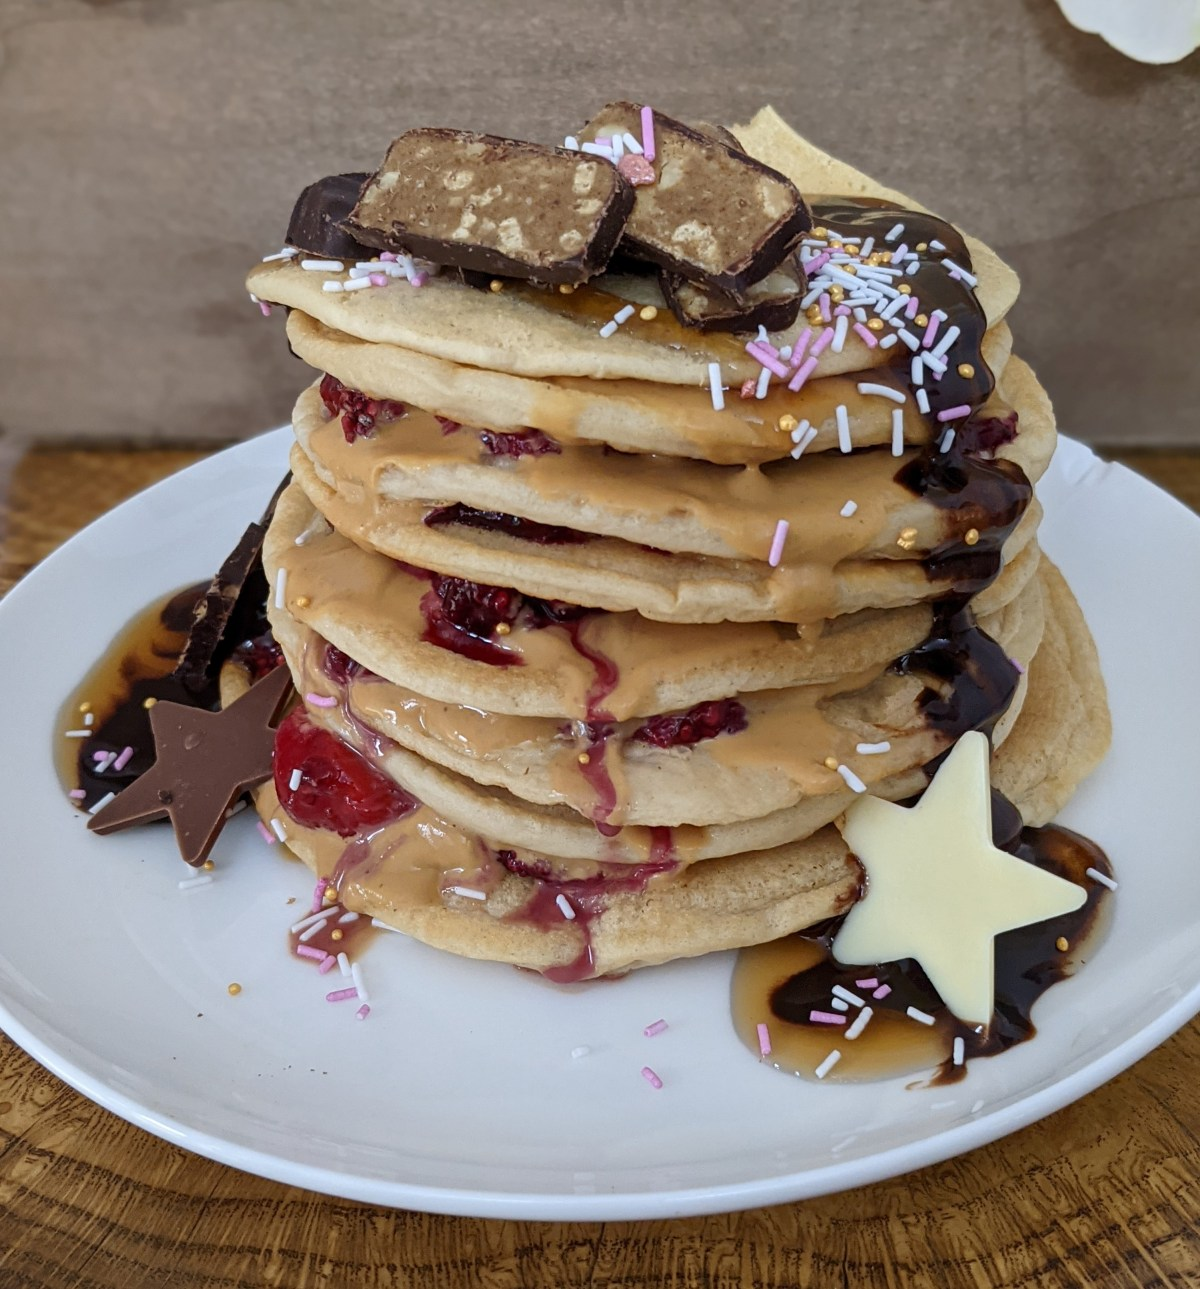 Delicious stack of pancakes that include an eat vive bar.